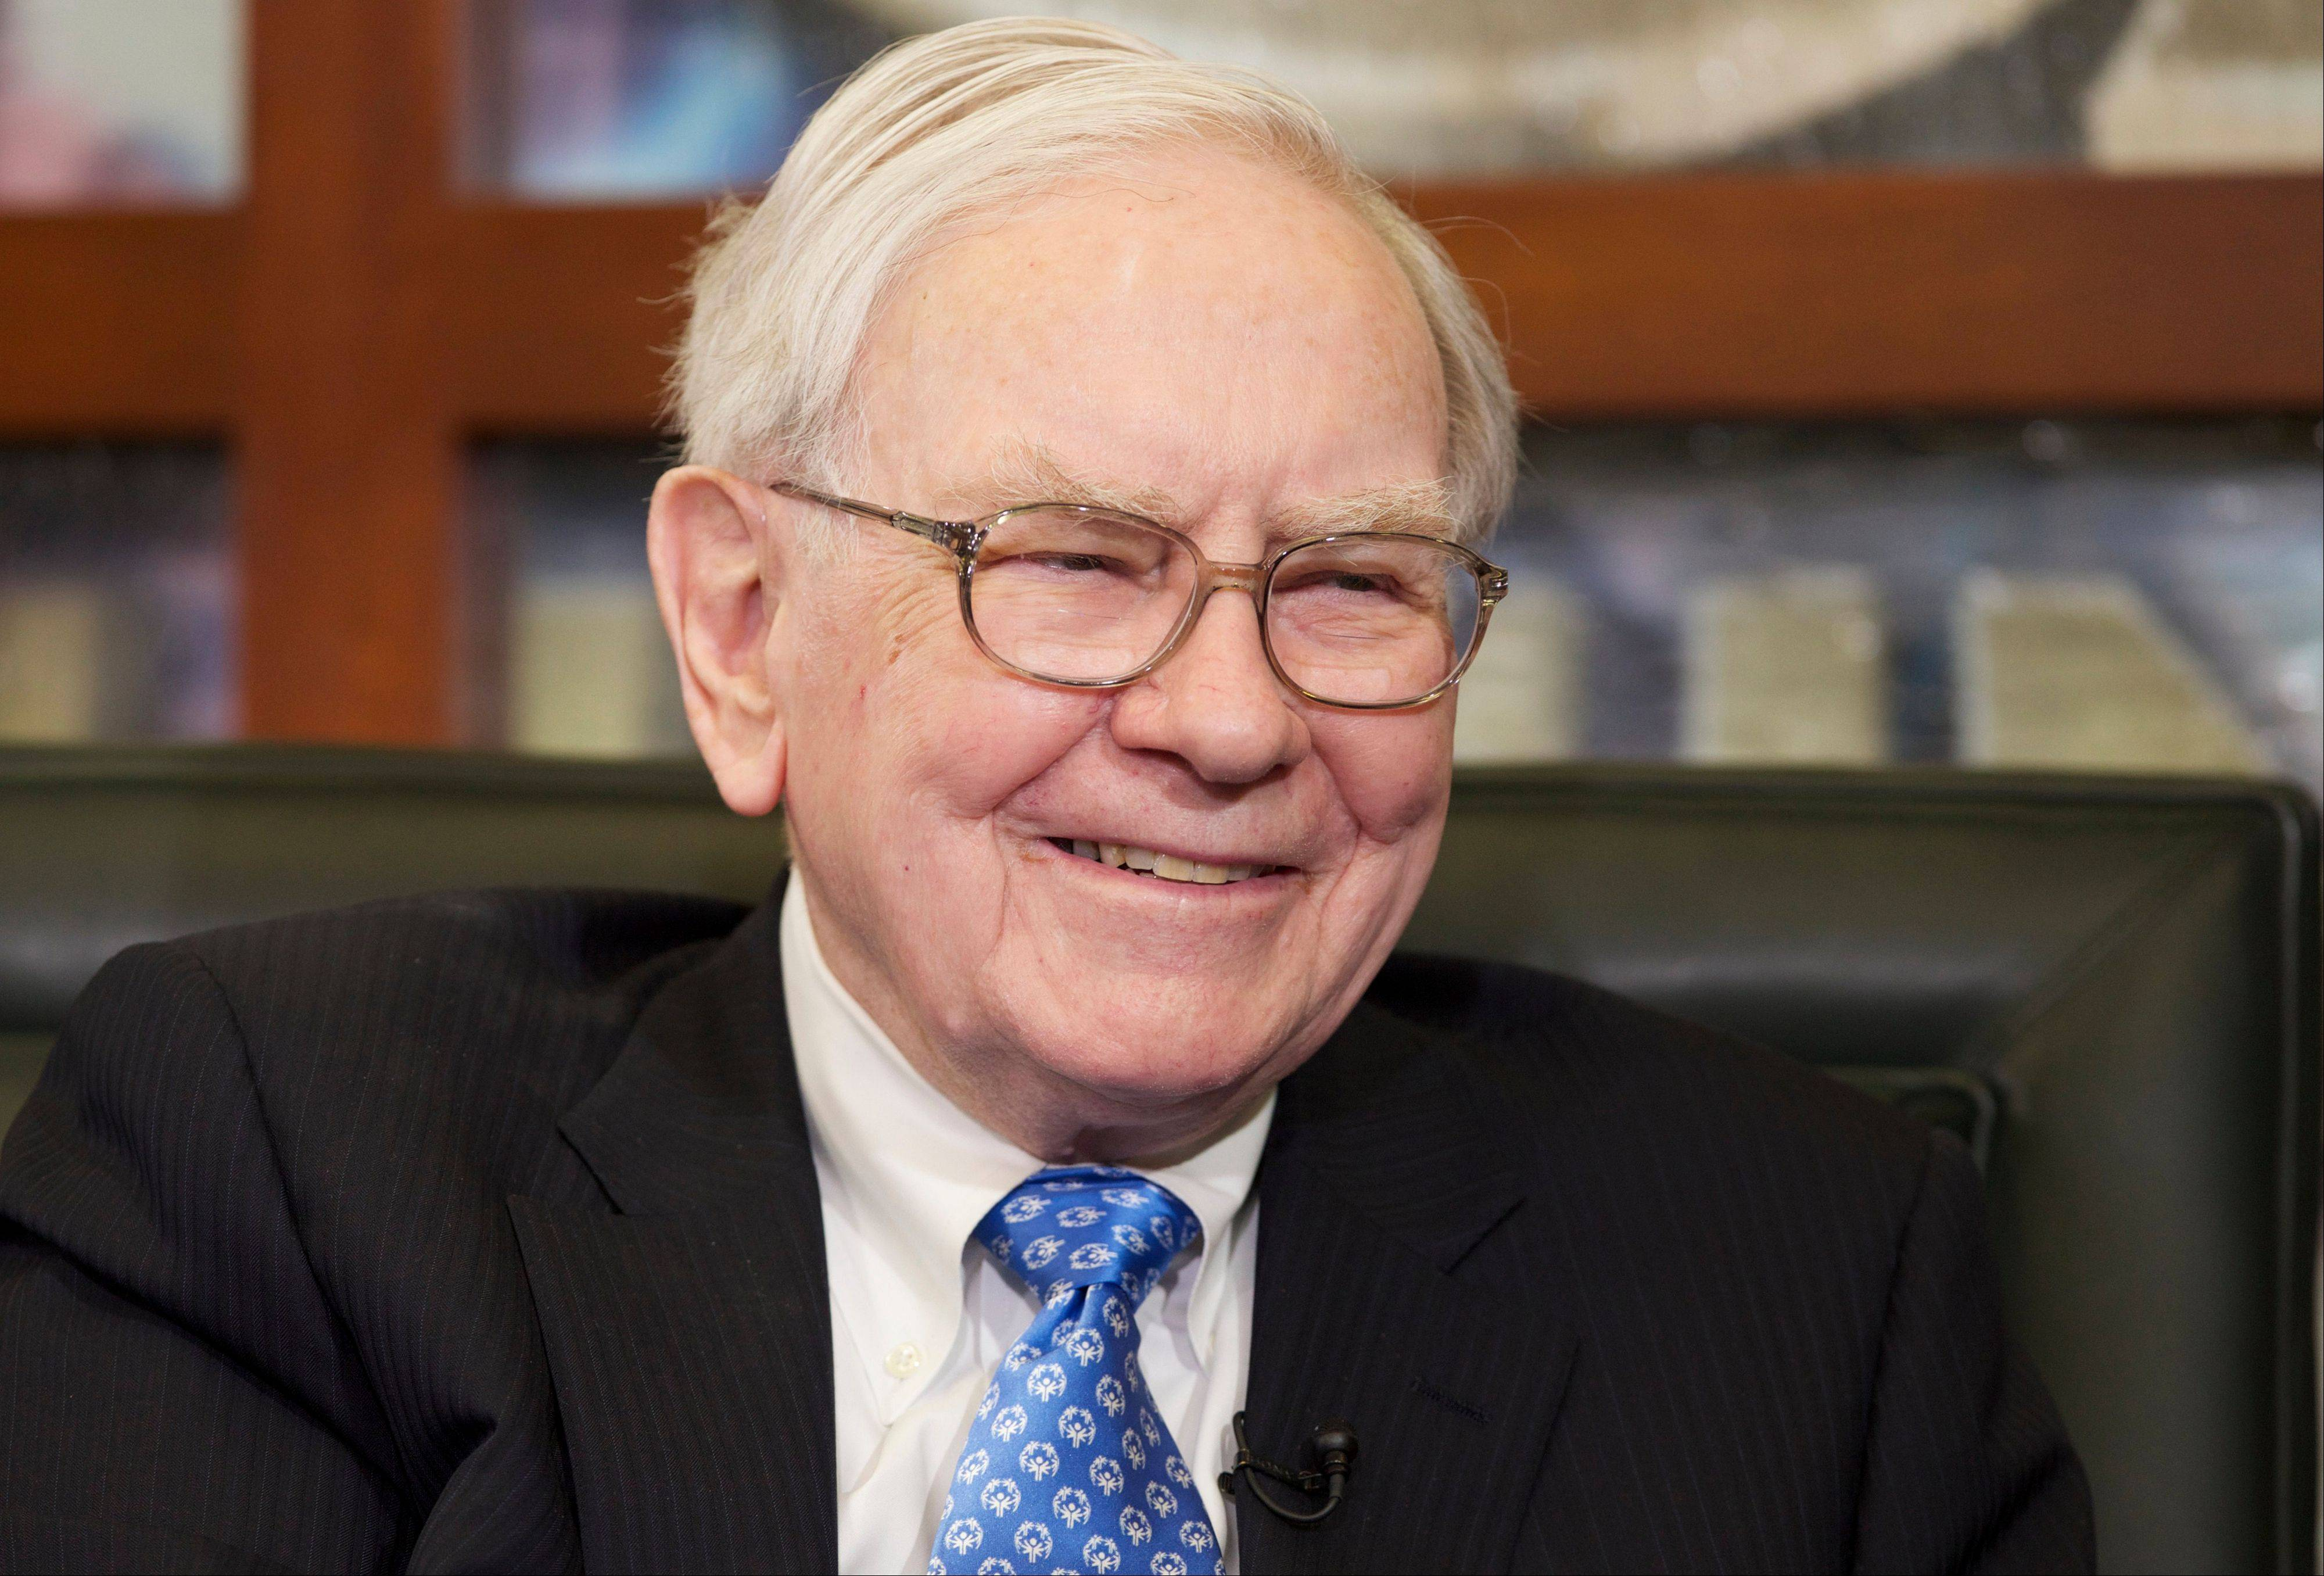 Billionaire Warren Buffett is giving five charities more than $2.6 billion worth of Berkshire Hathaway Inc. stock.